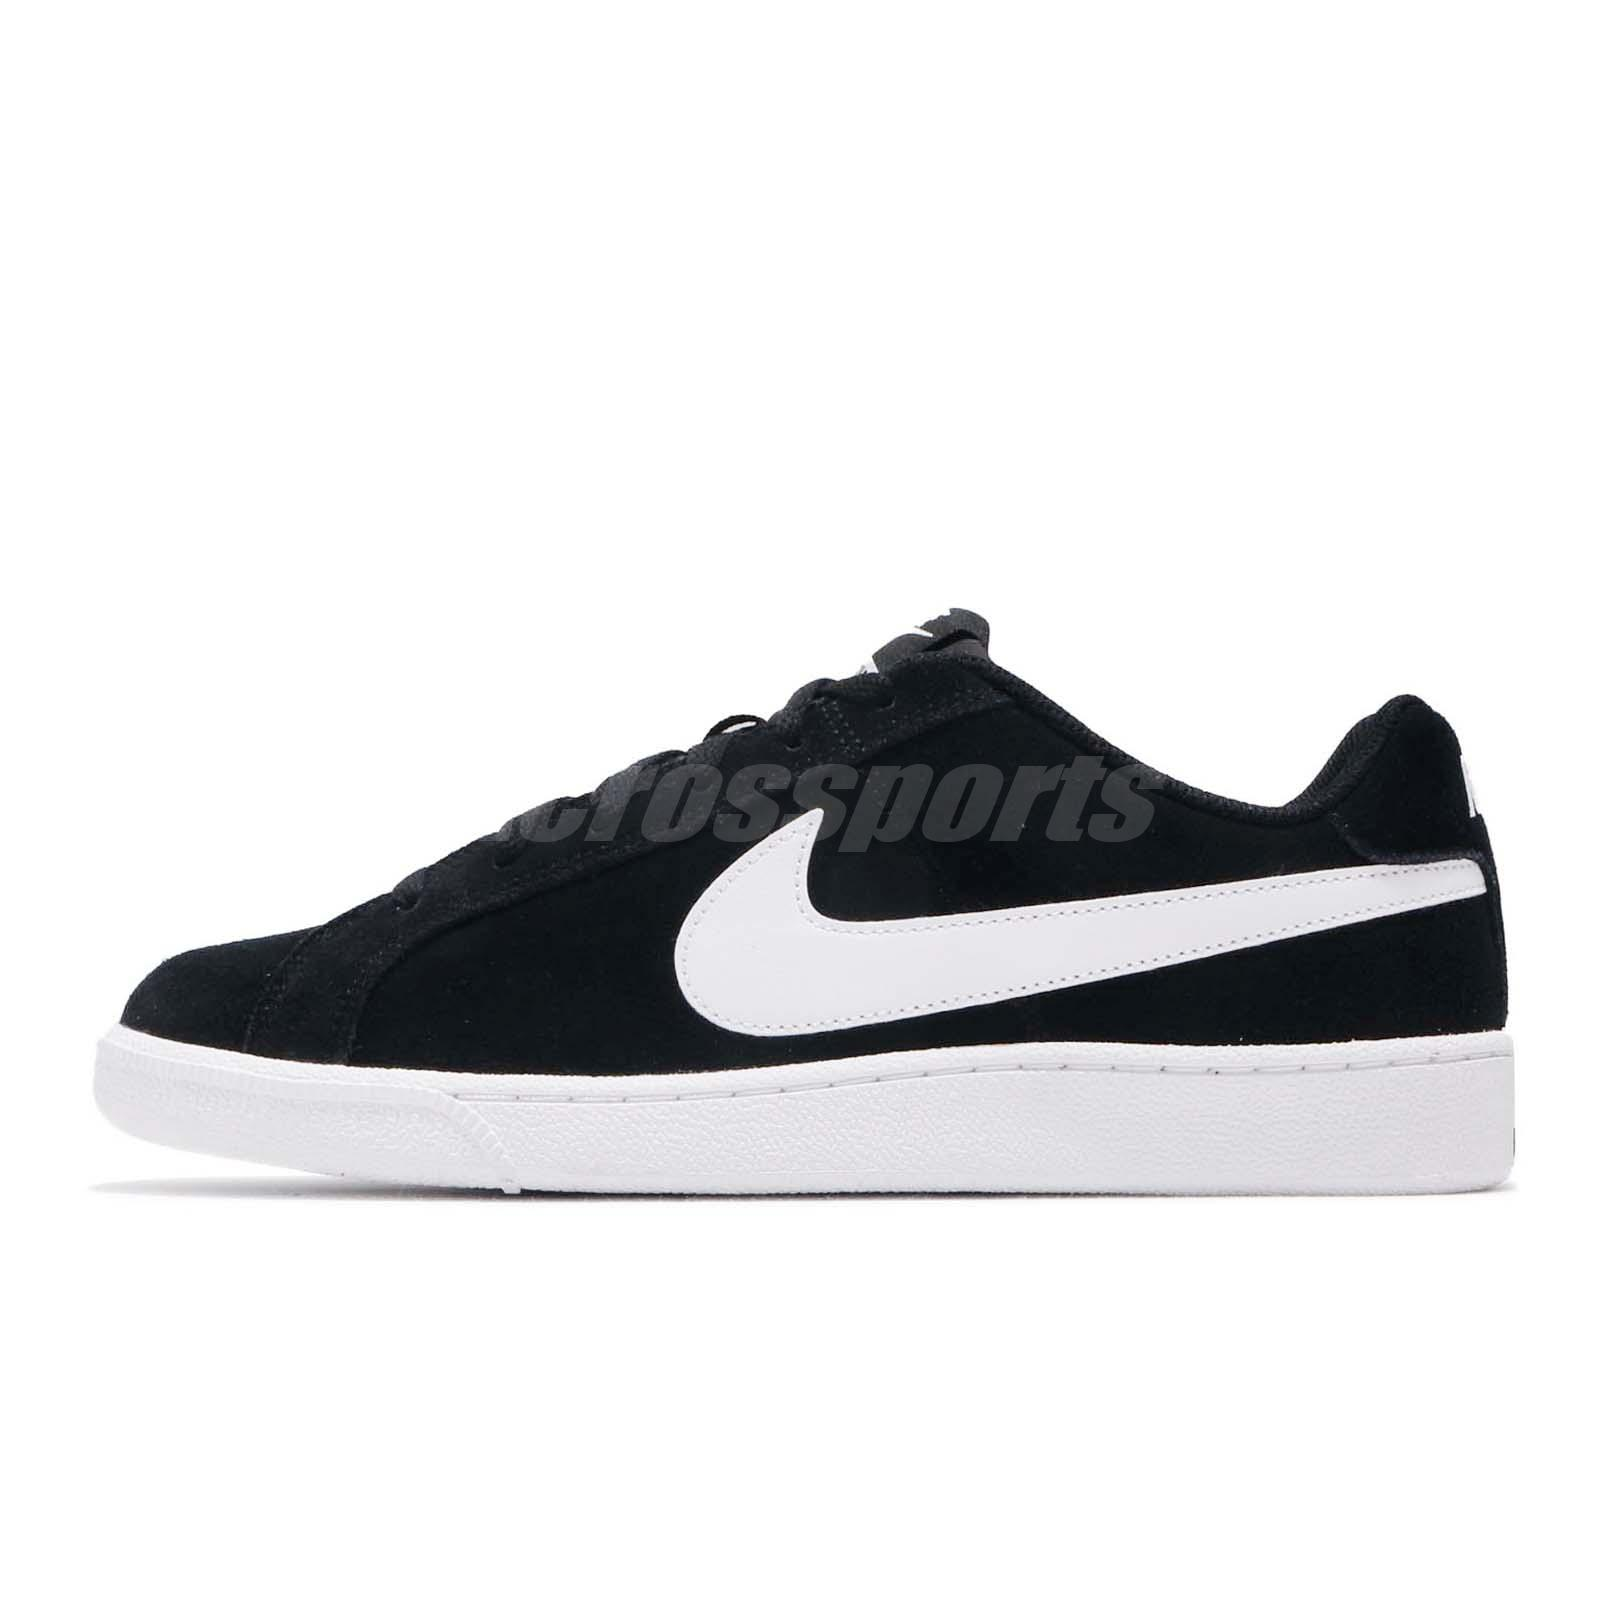 8a324e2cf15 Details about Nike Court Royale Suede Black White Men Casual Shoes Sneakers  819802-011